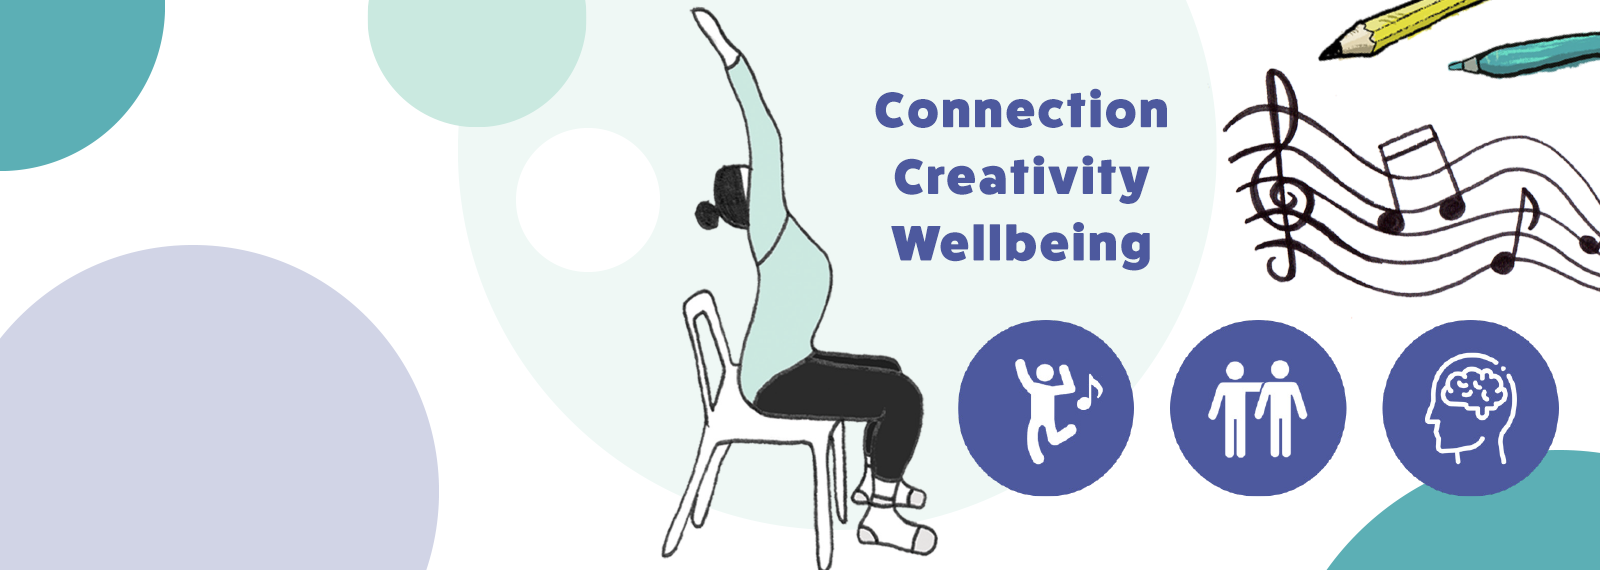 Website-banner_wellbeing-pack-2-1600x570